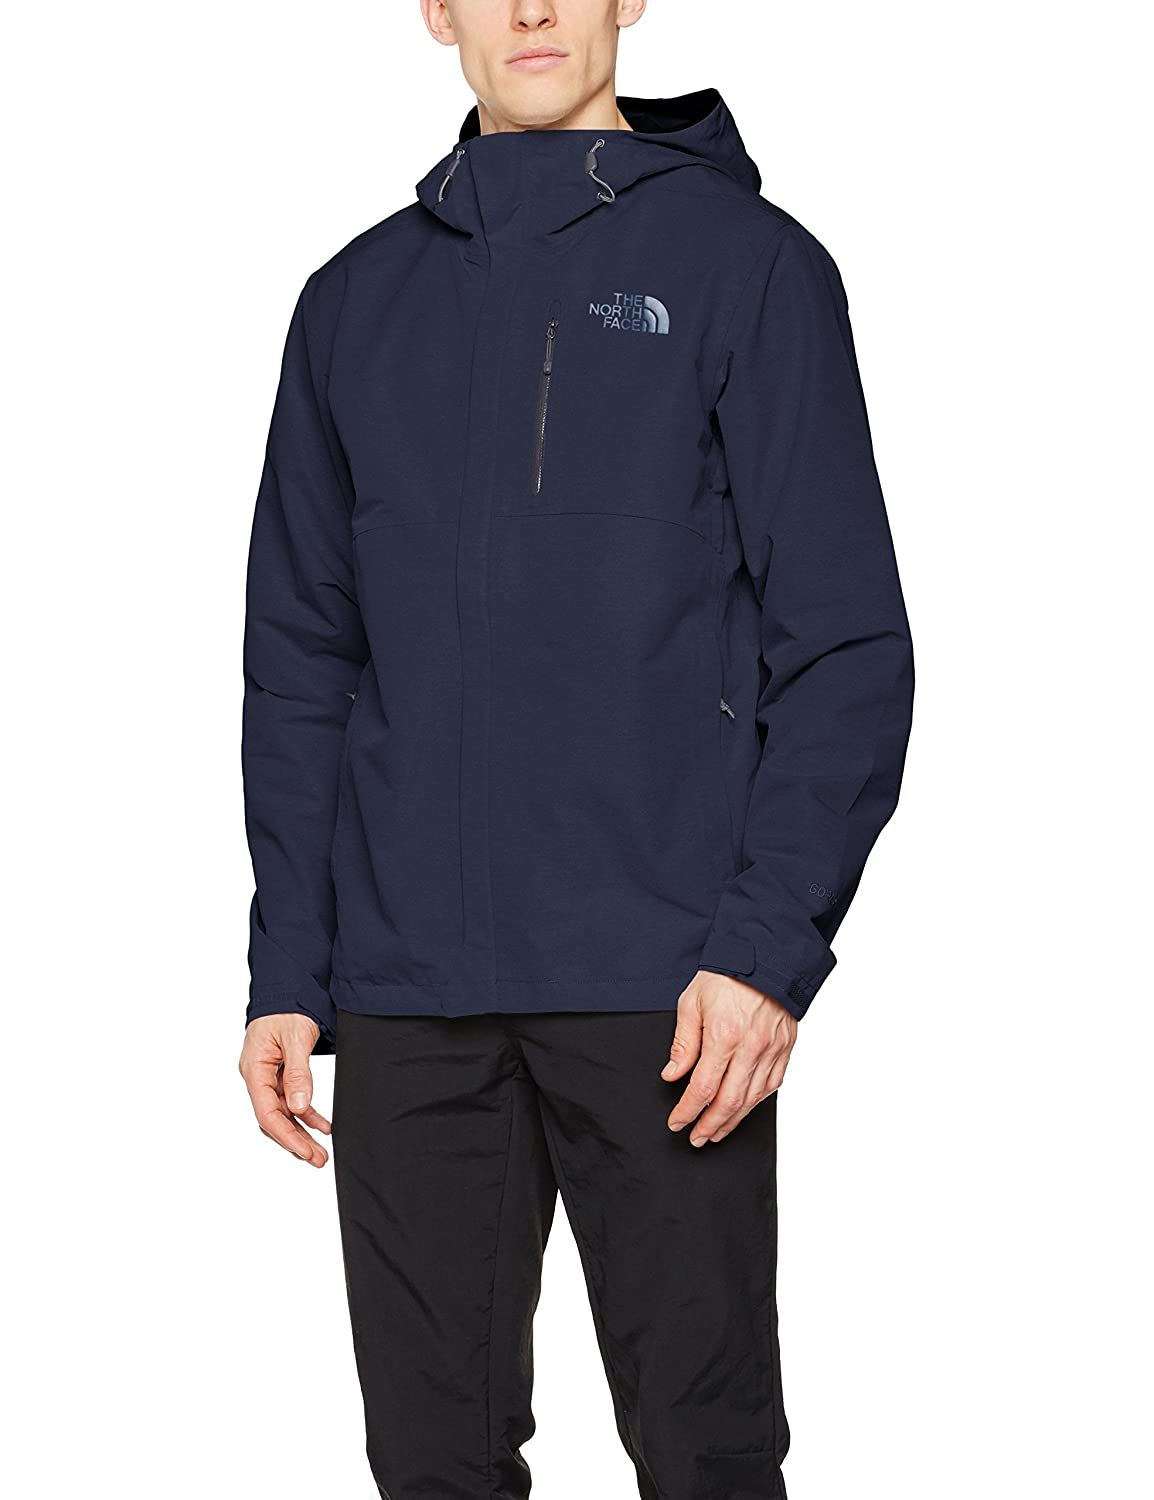 The North Face OUTERWEAR メンズ B01HQQ5EOC 3L|Urban Navy Urban Navy 3L